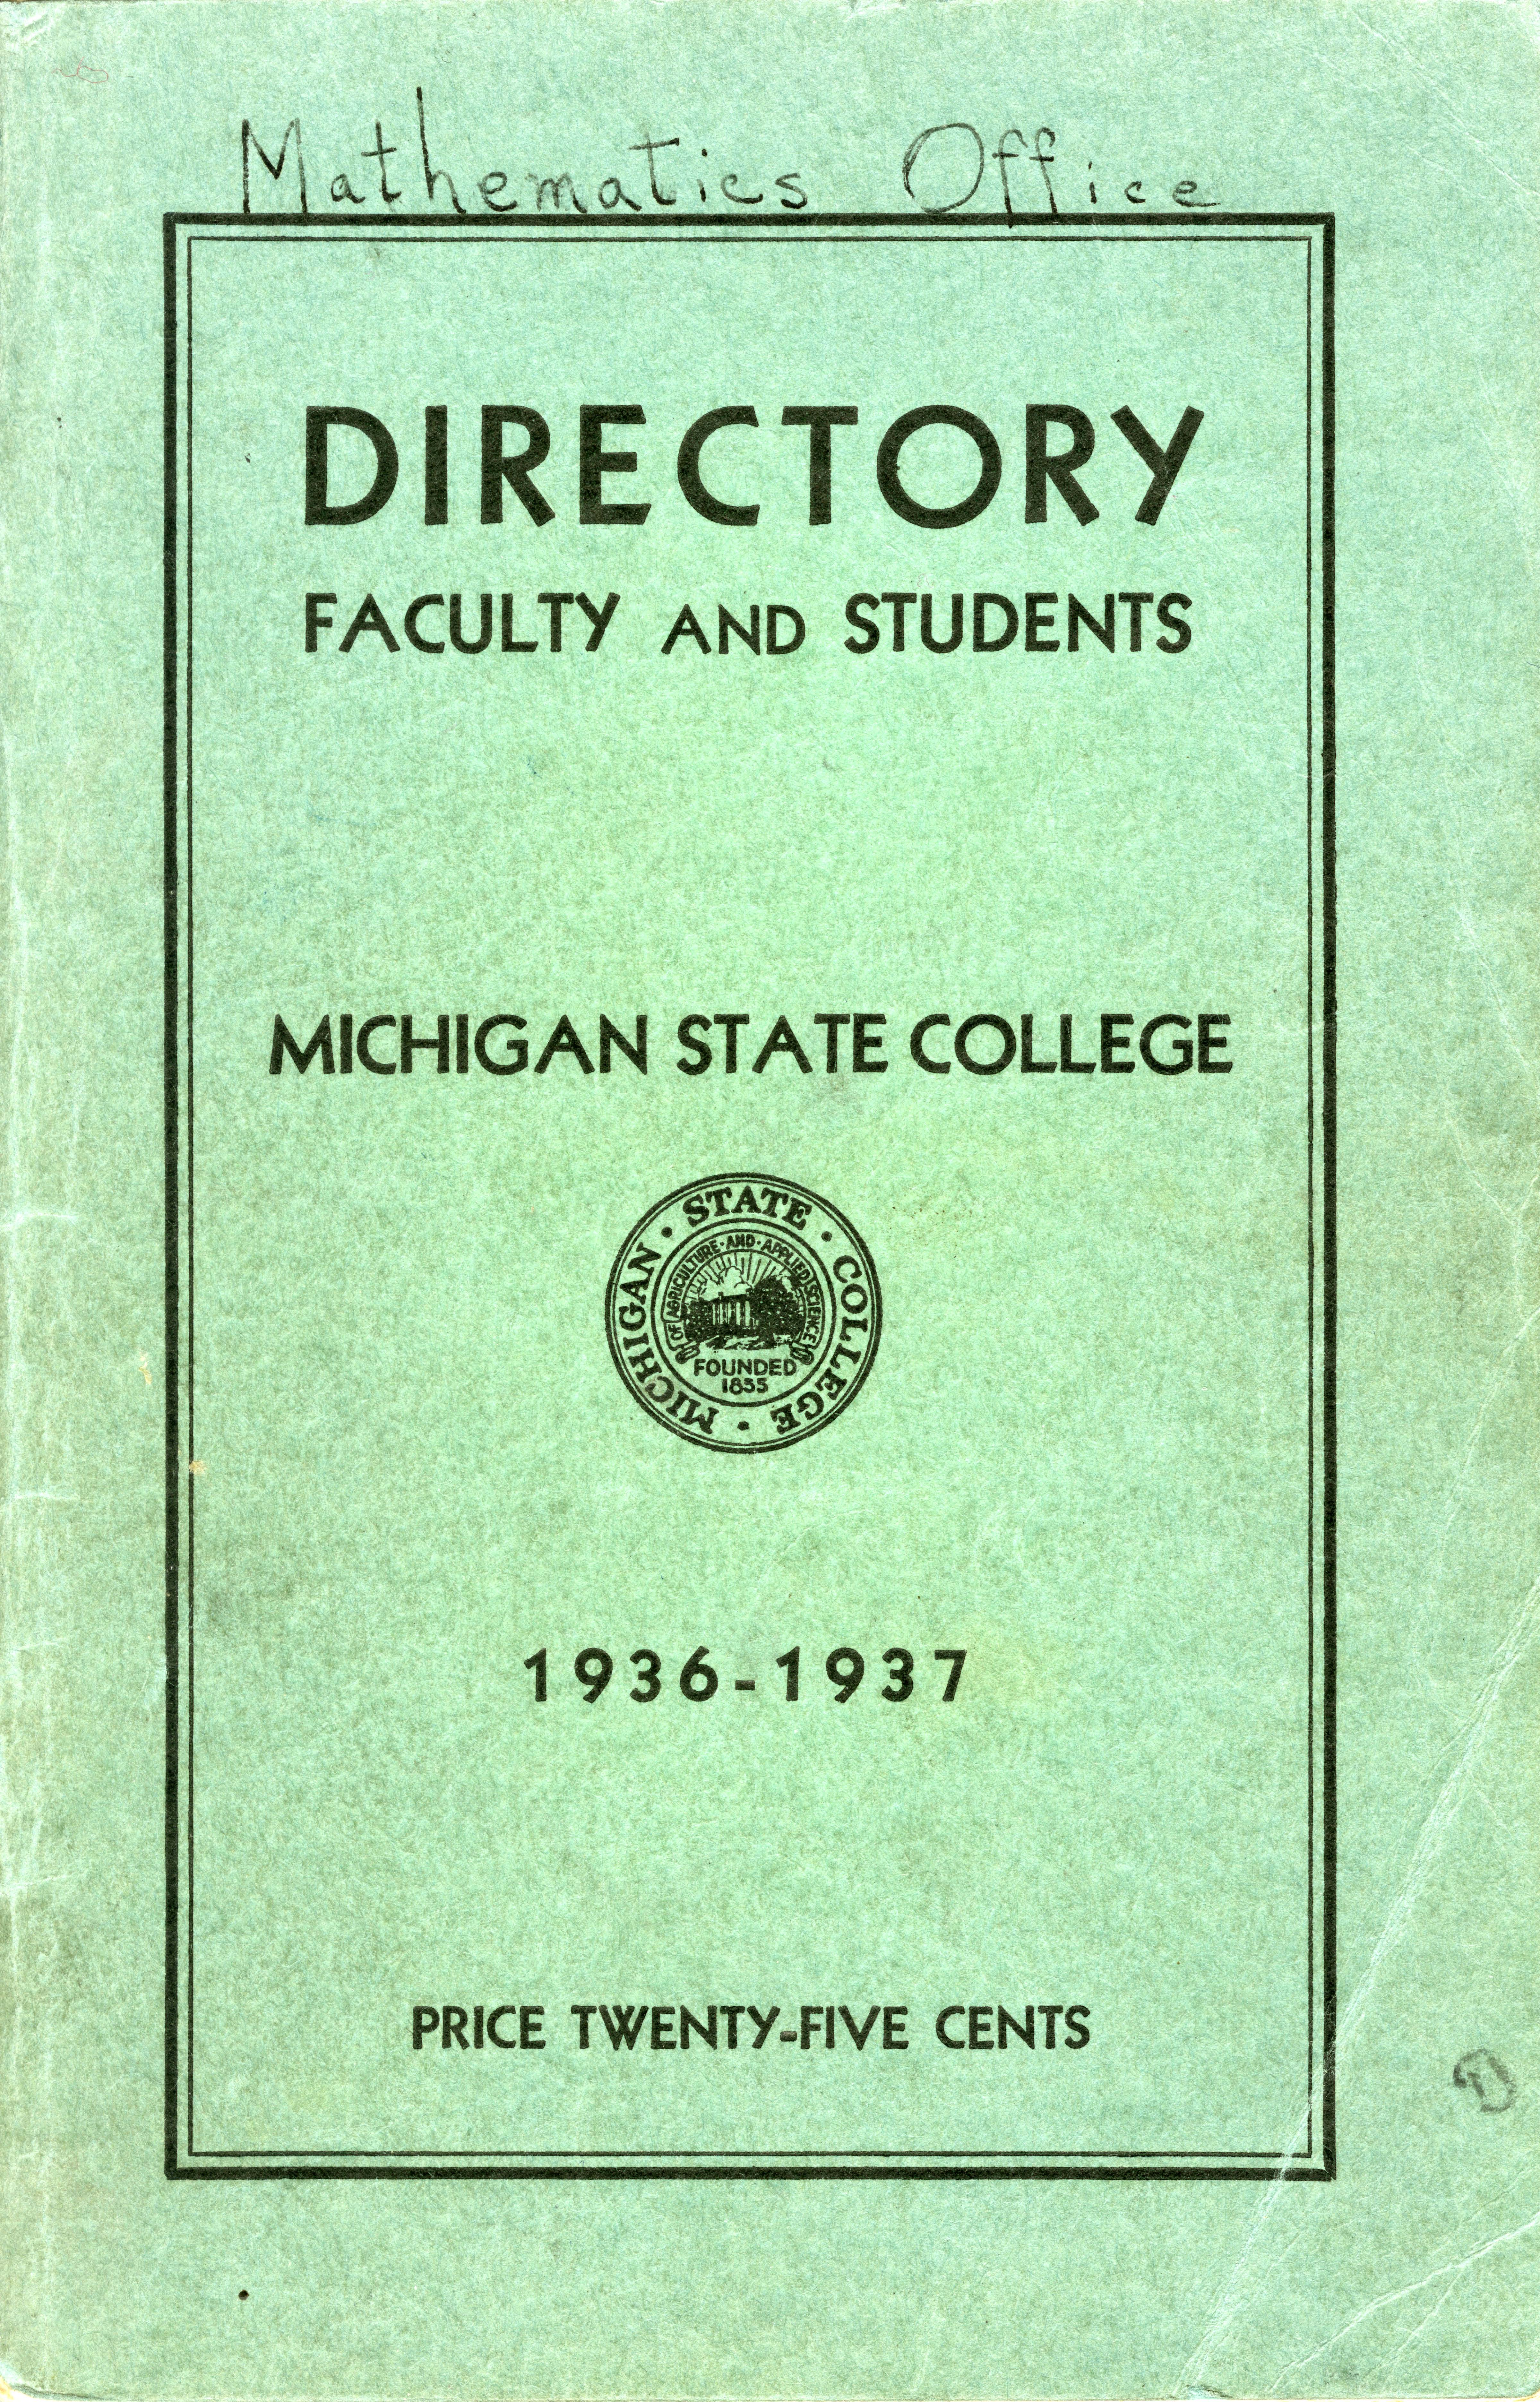 1936-1937 Michigan State College Faculty and Student Directory